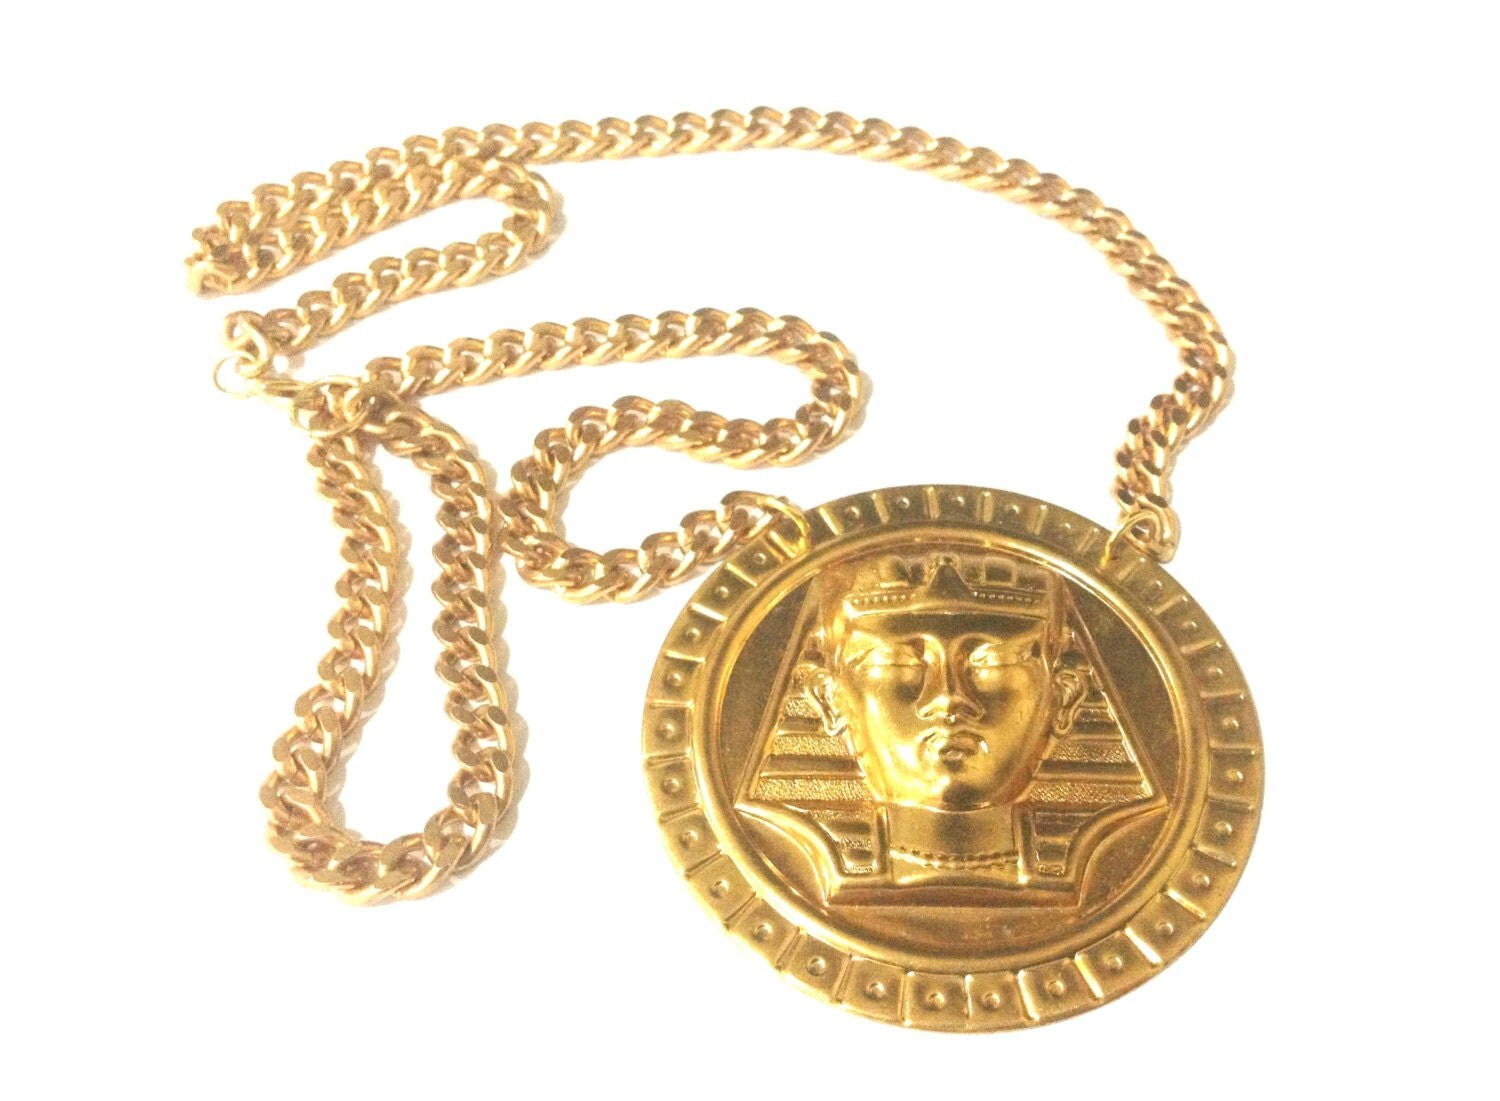 Versace Inspired Necklace Chain // Versace Inspired